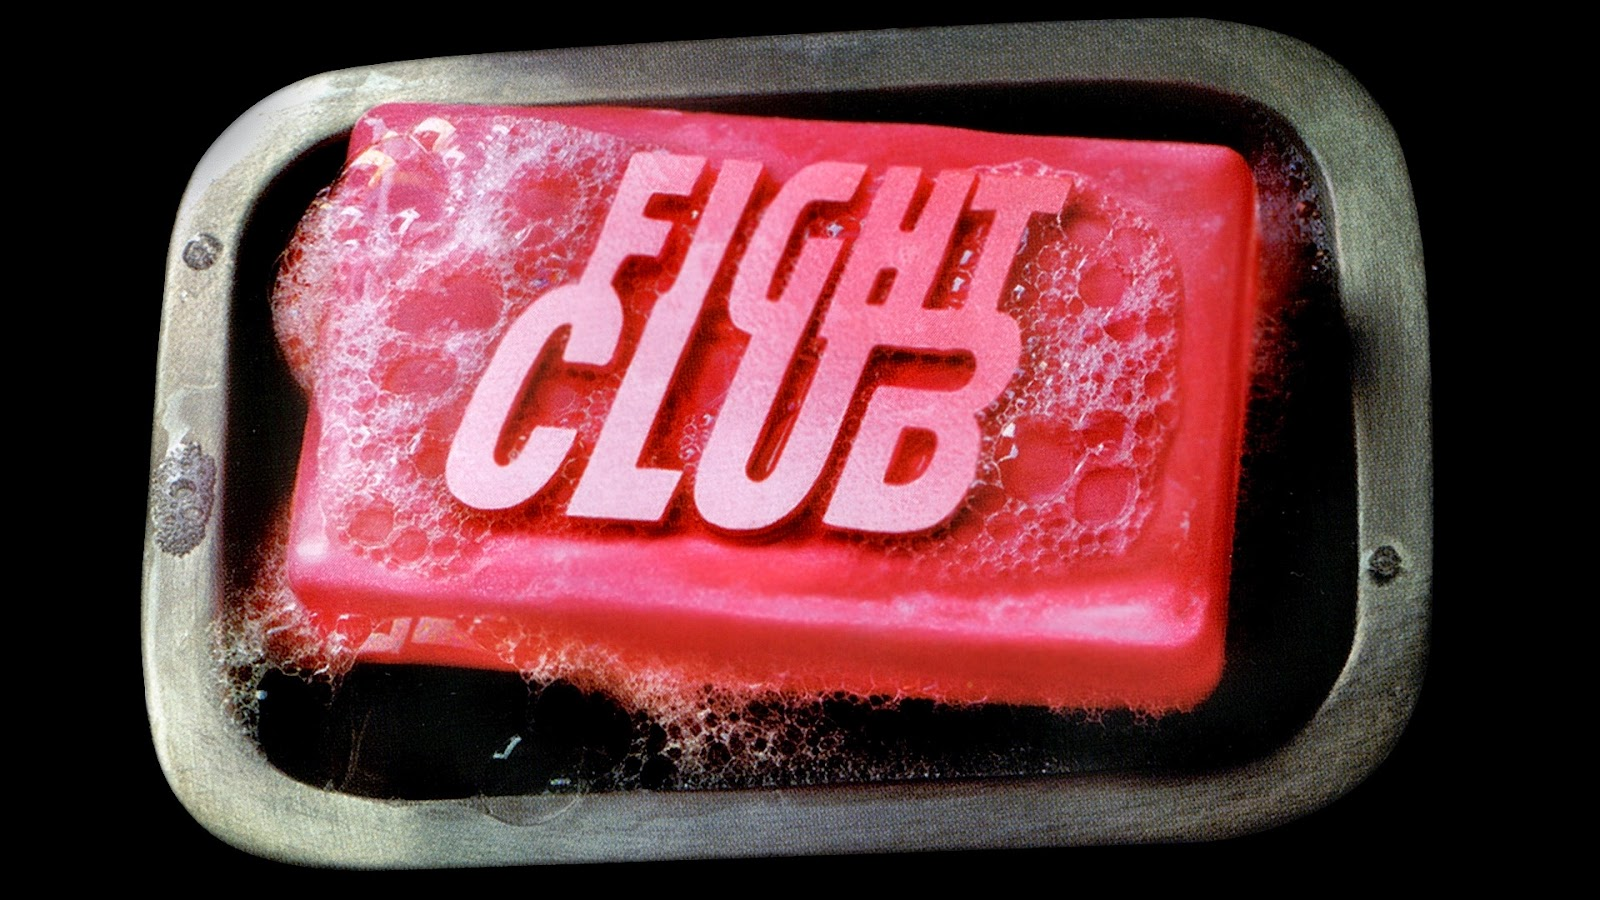 HD Fight Club soap wallpaper photo